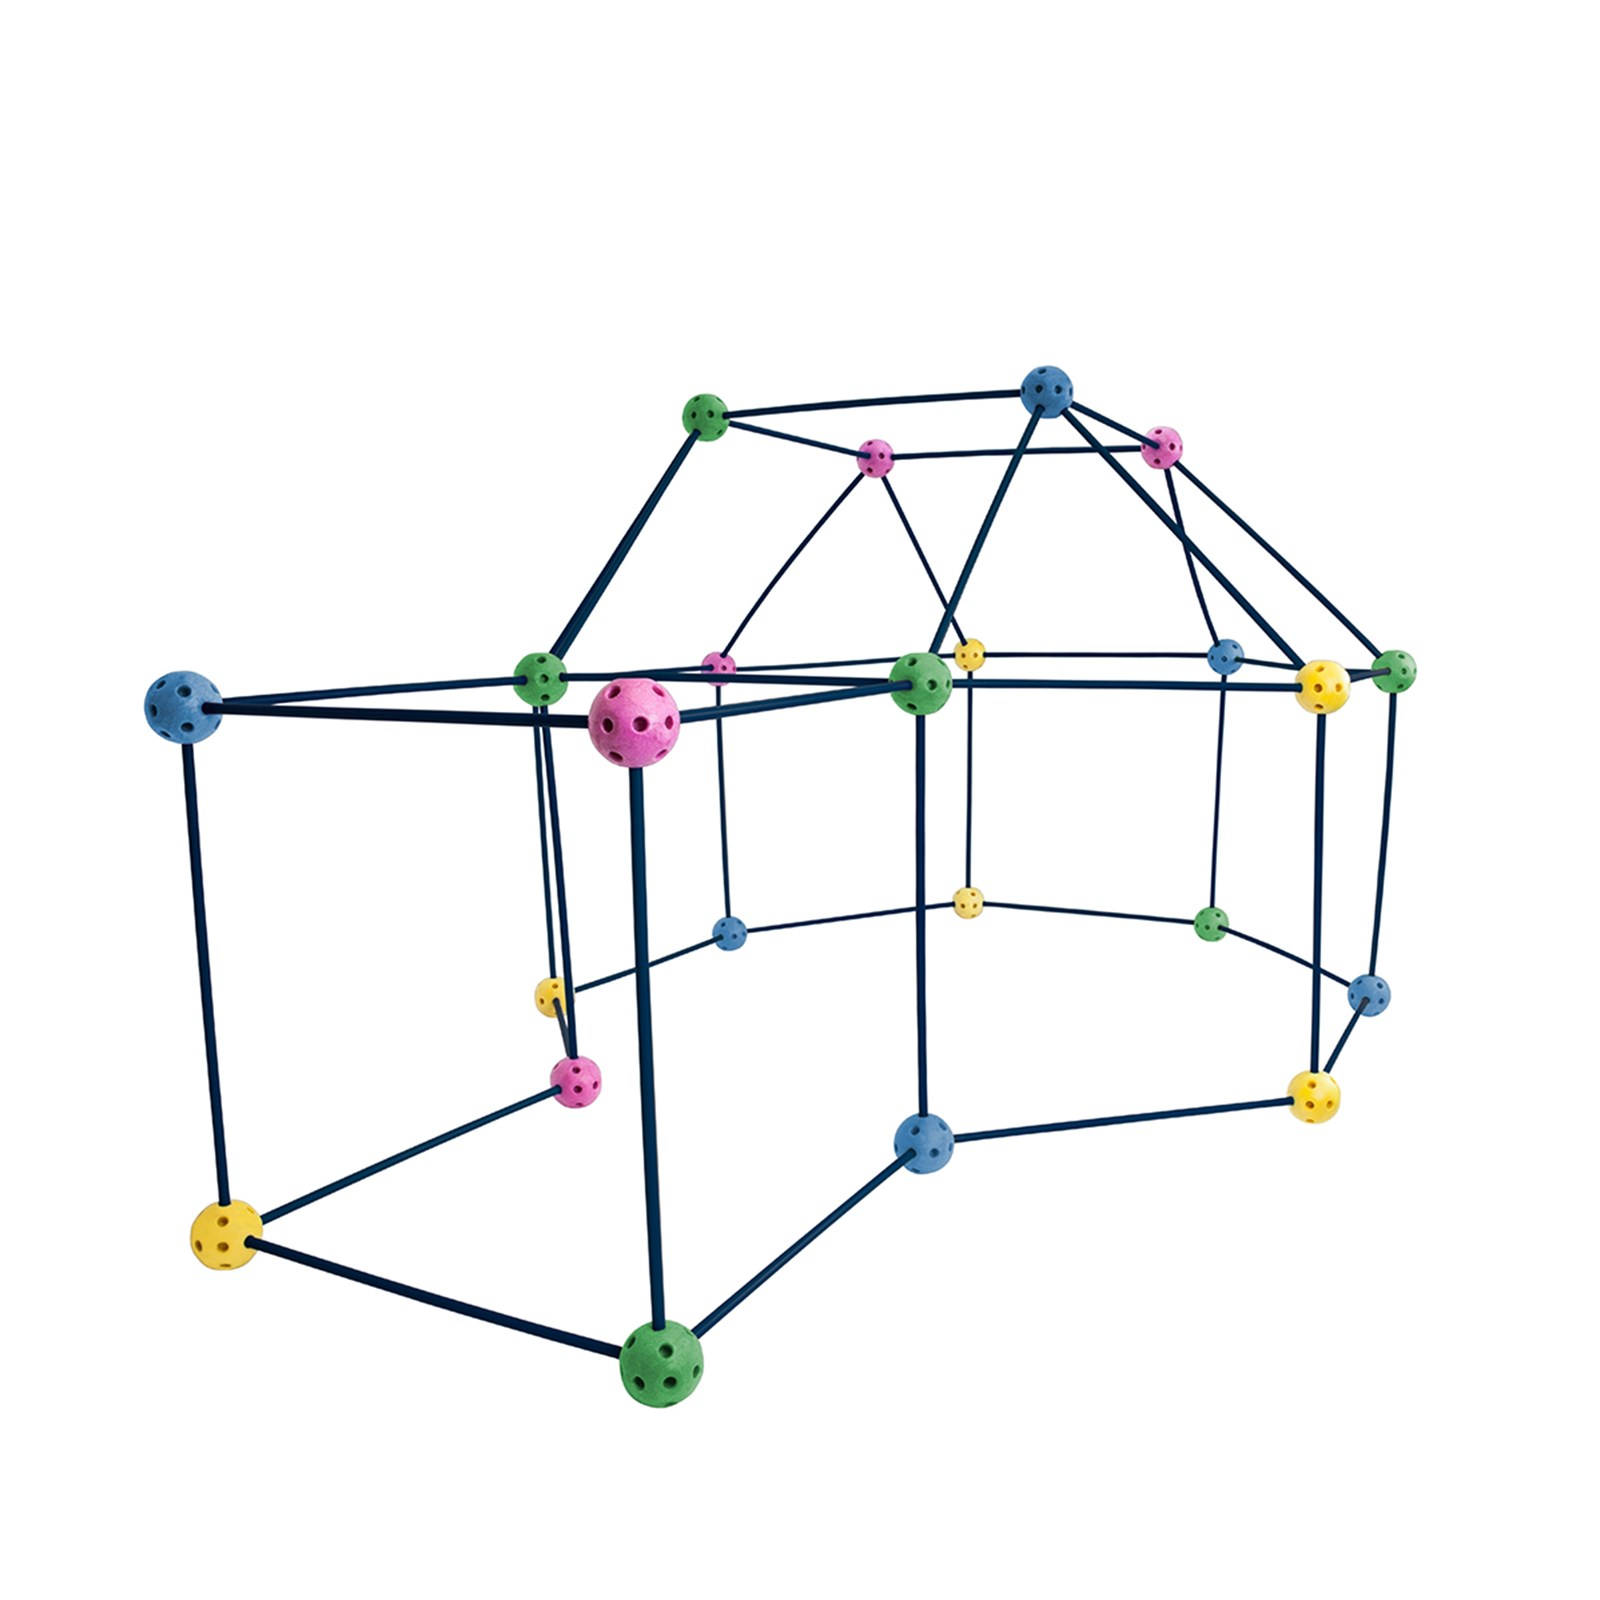 72 Piece Fort Building Kit $29.99 Shipped